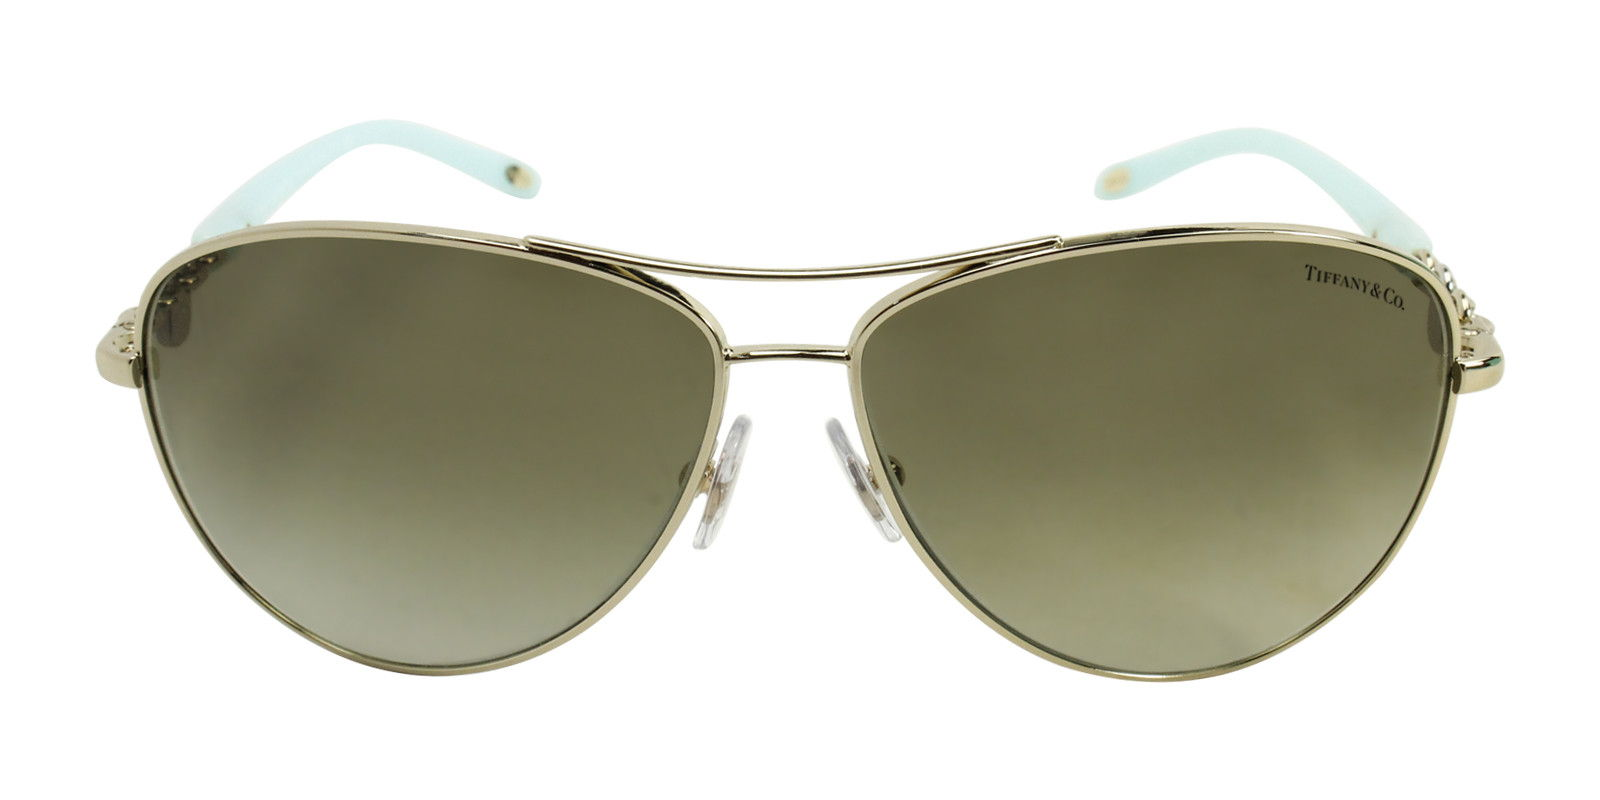 TIFFANY WOMEN'S TF3034 GOLD  GREEN LENS SUNGLASSES (front)